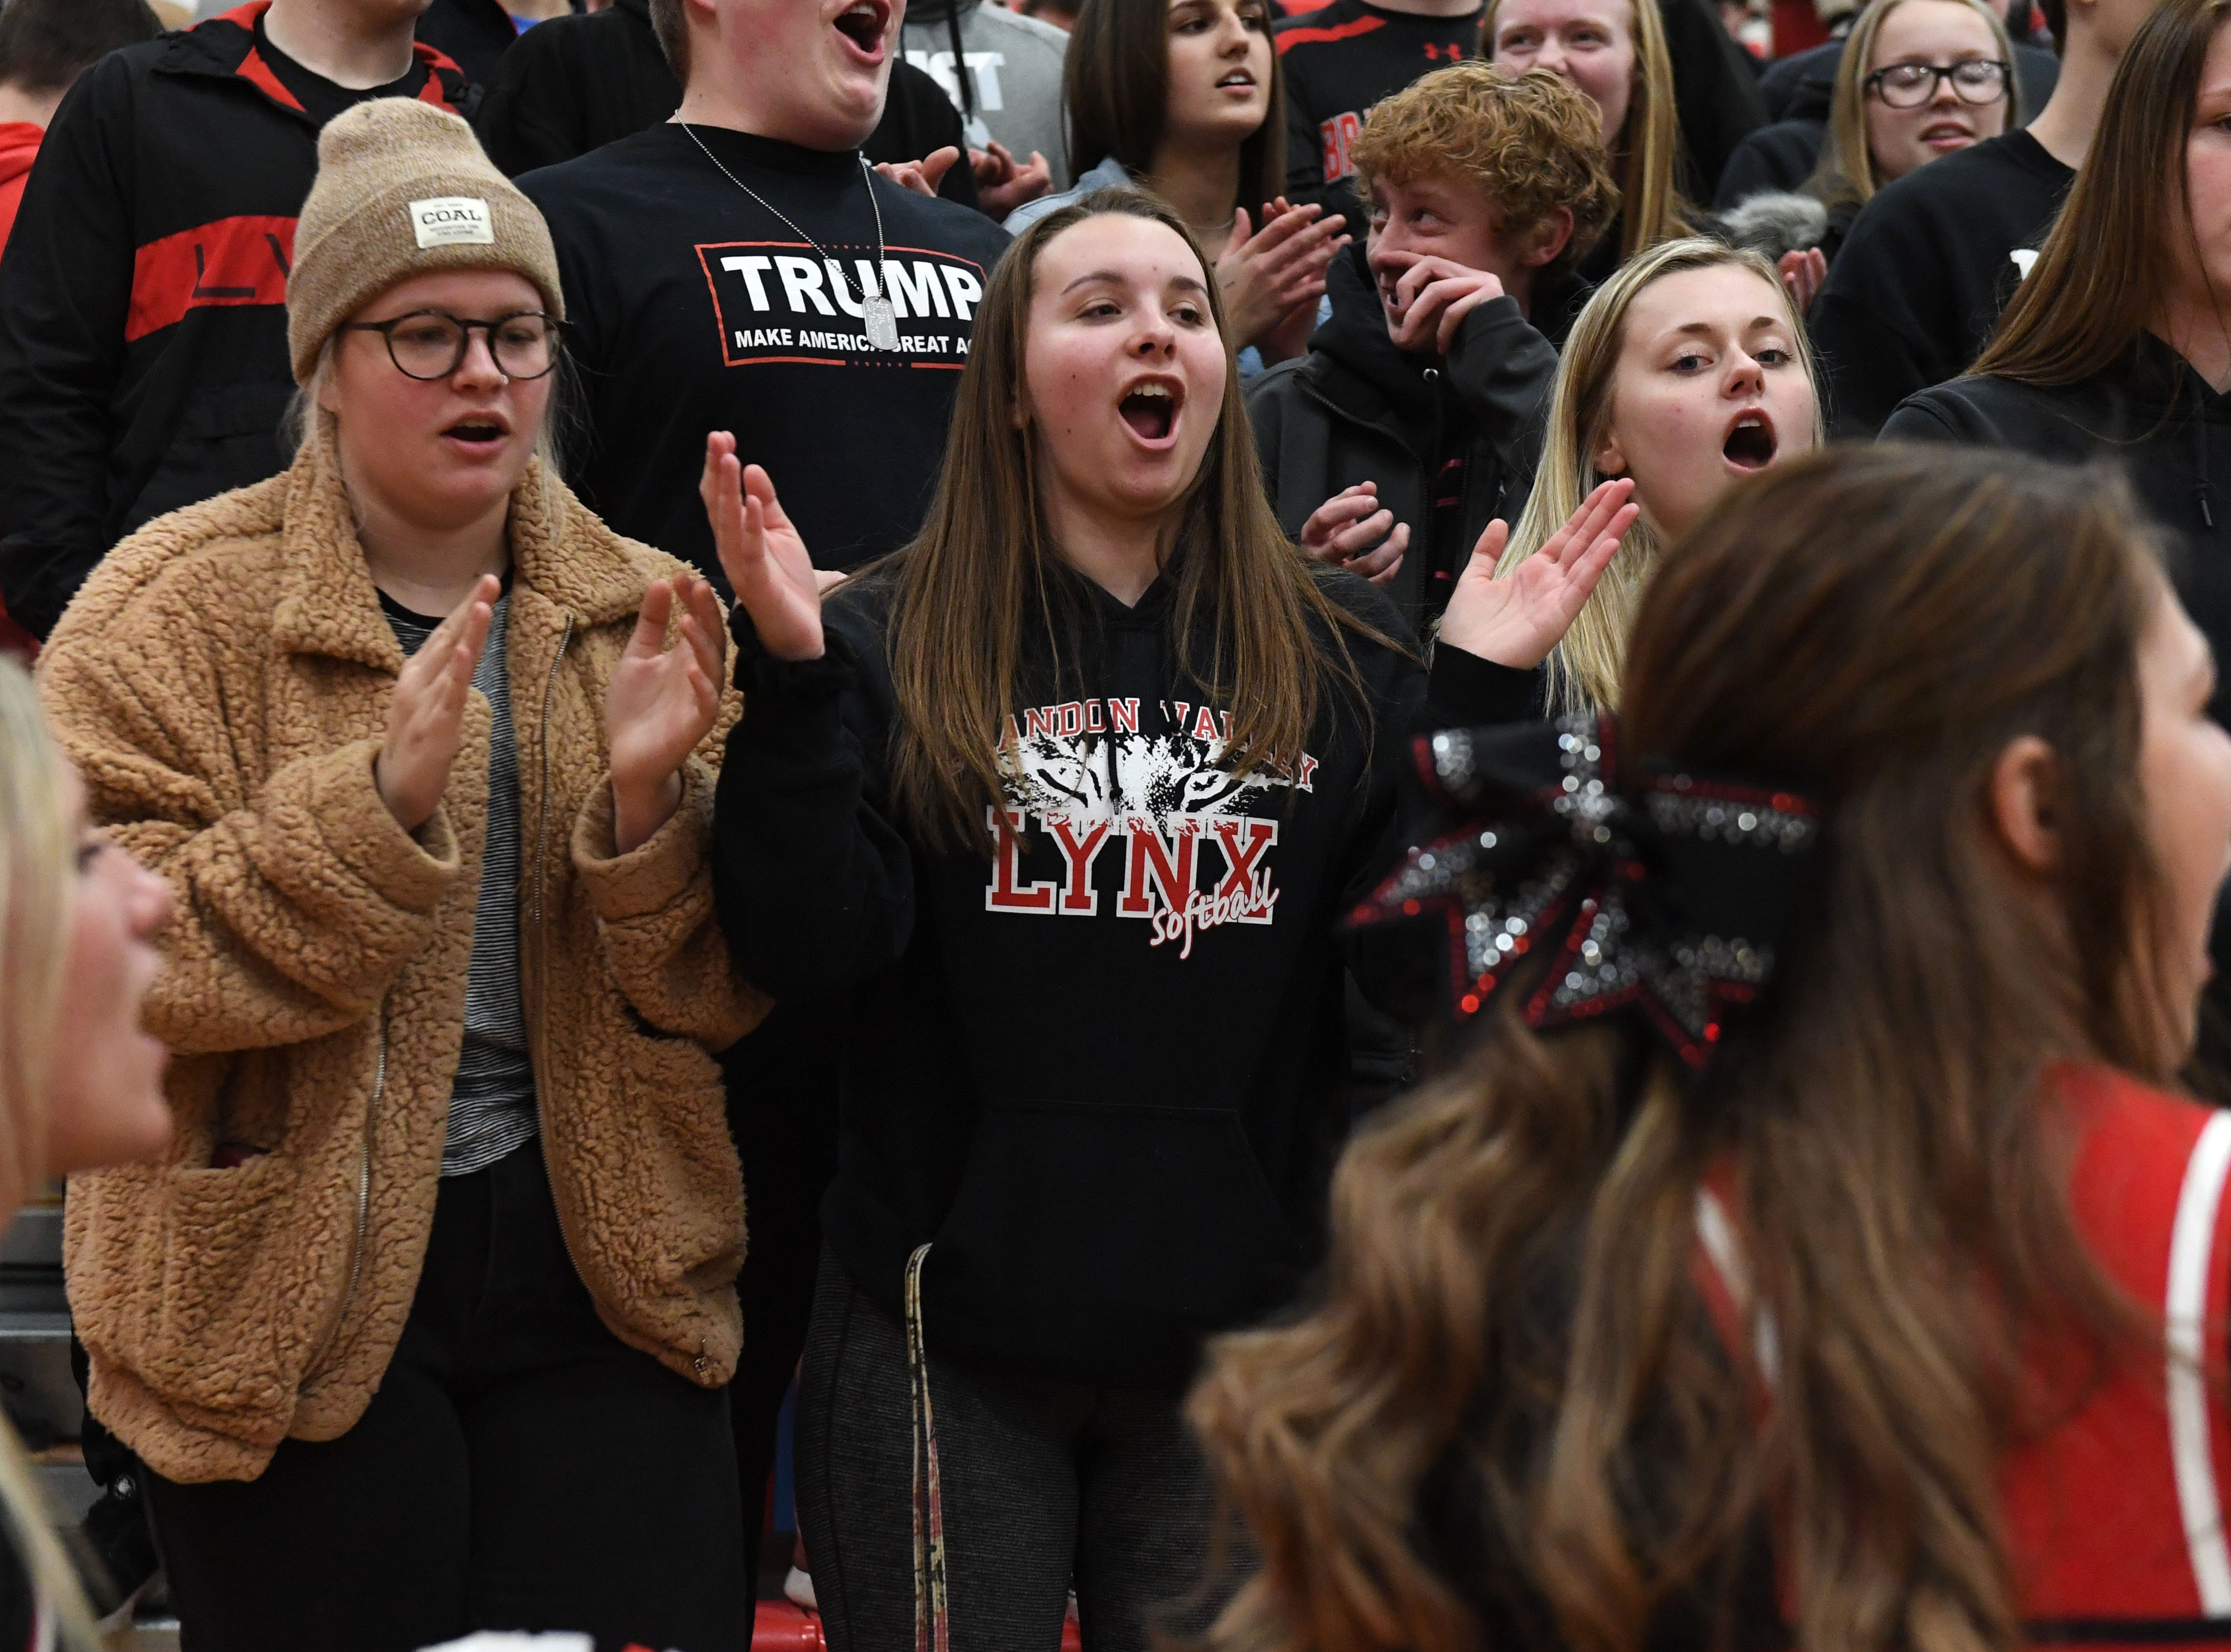 Brandon Valley fans react during a game against Lincoln in Sioux Falls, S.D., Tuesday, Feb. 5, 2019.